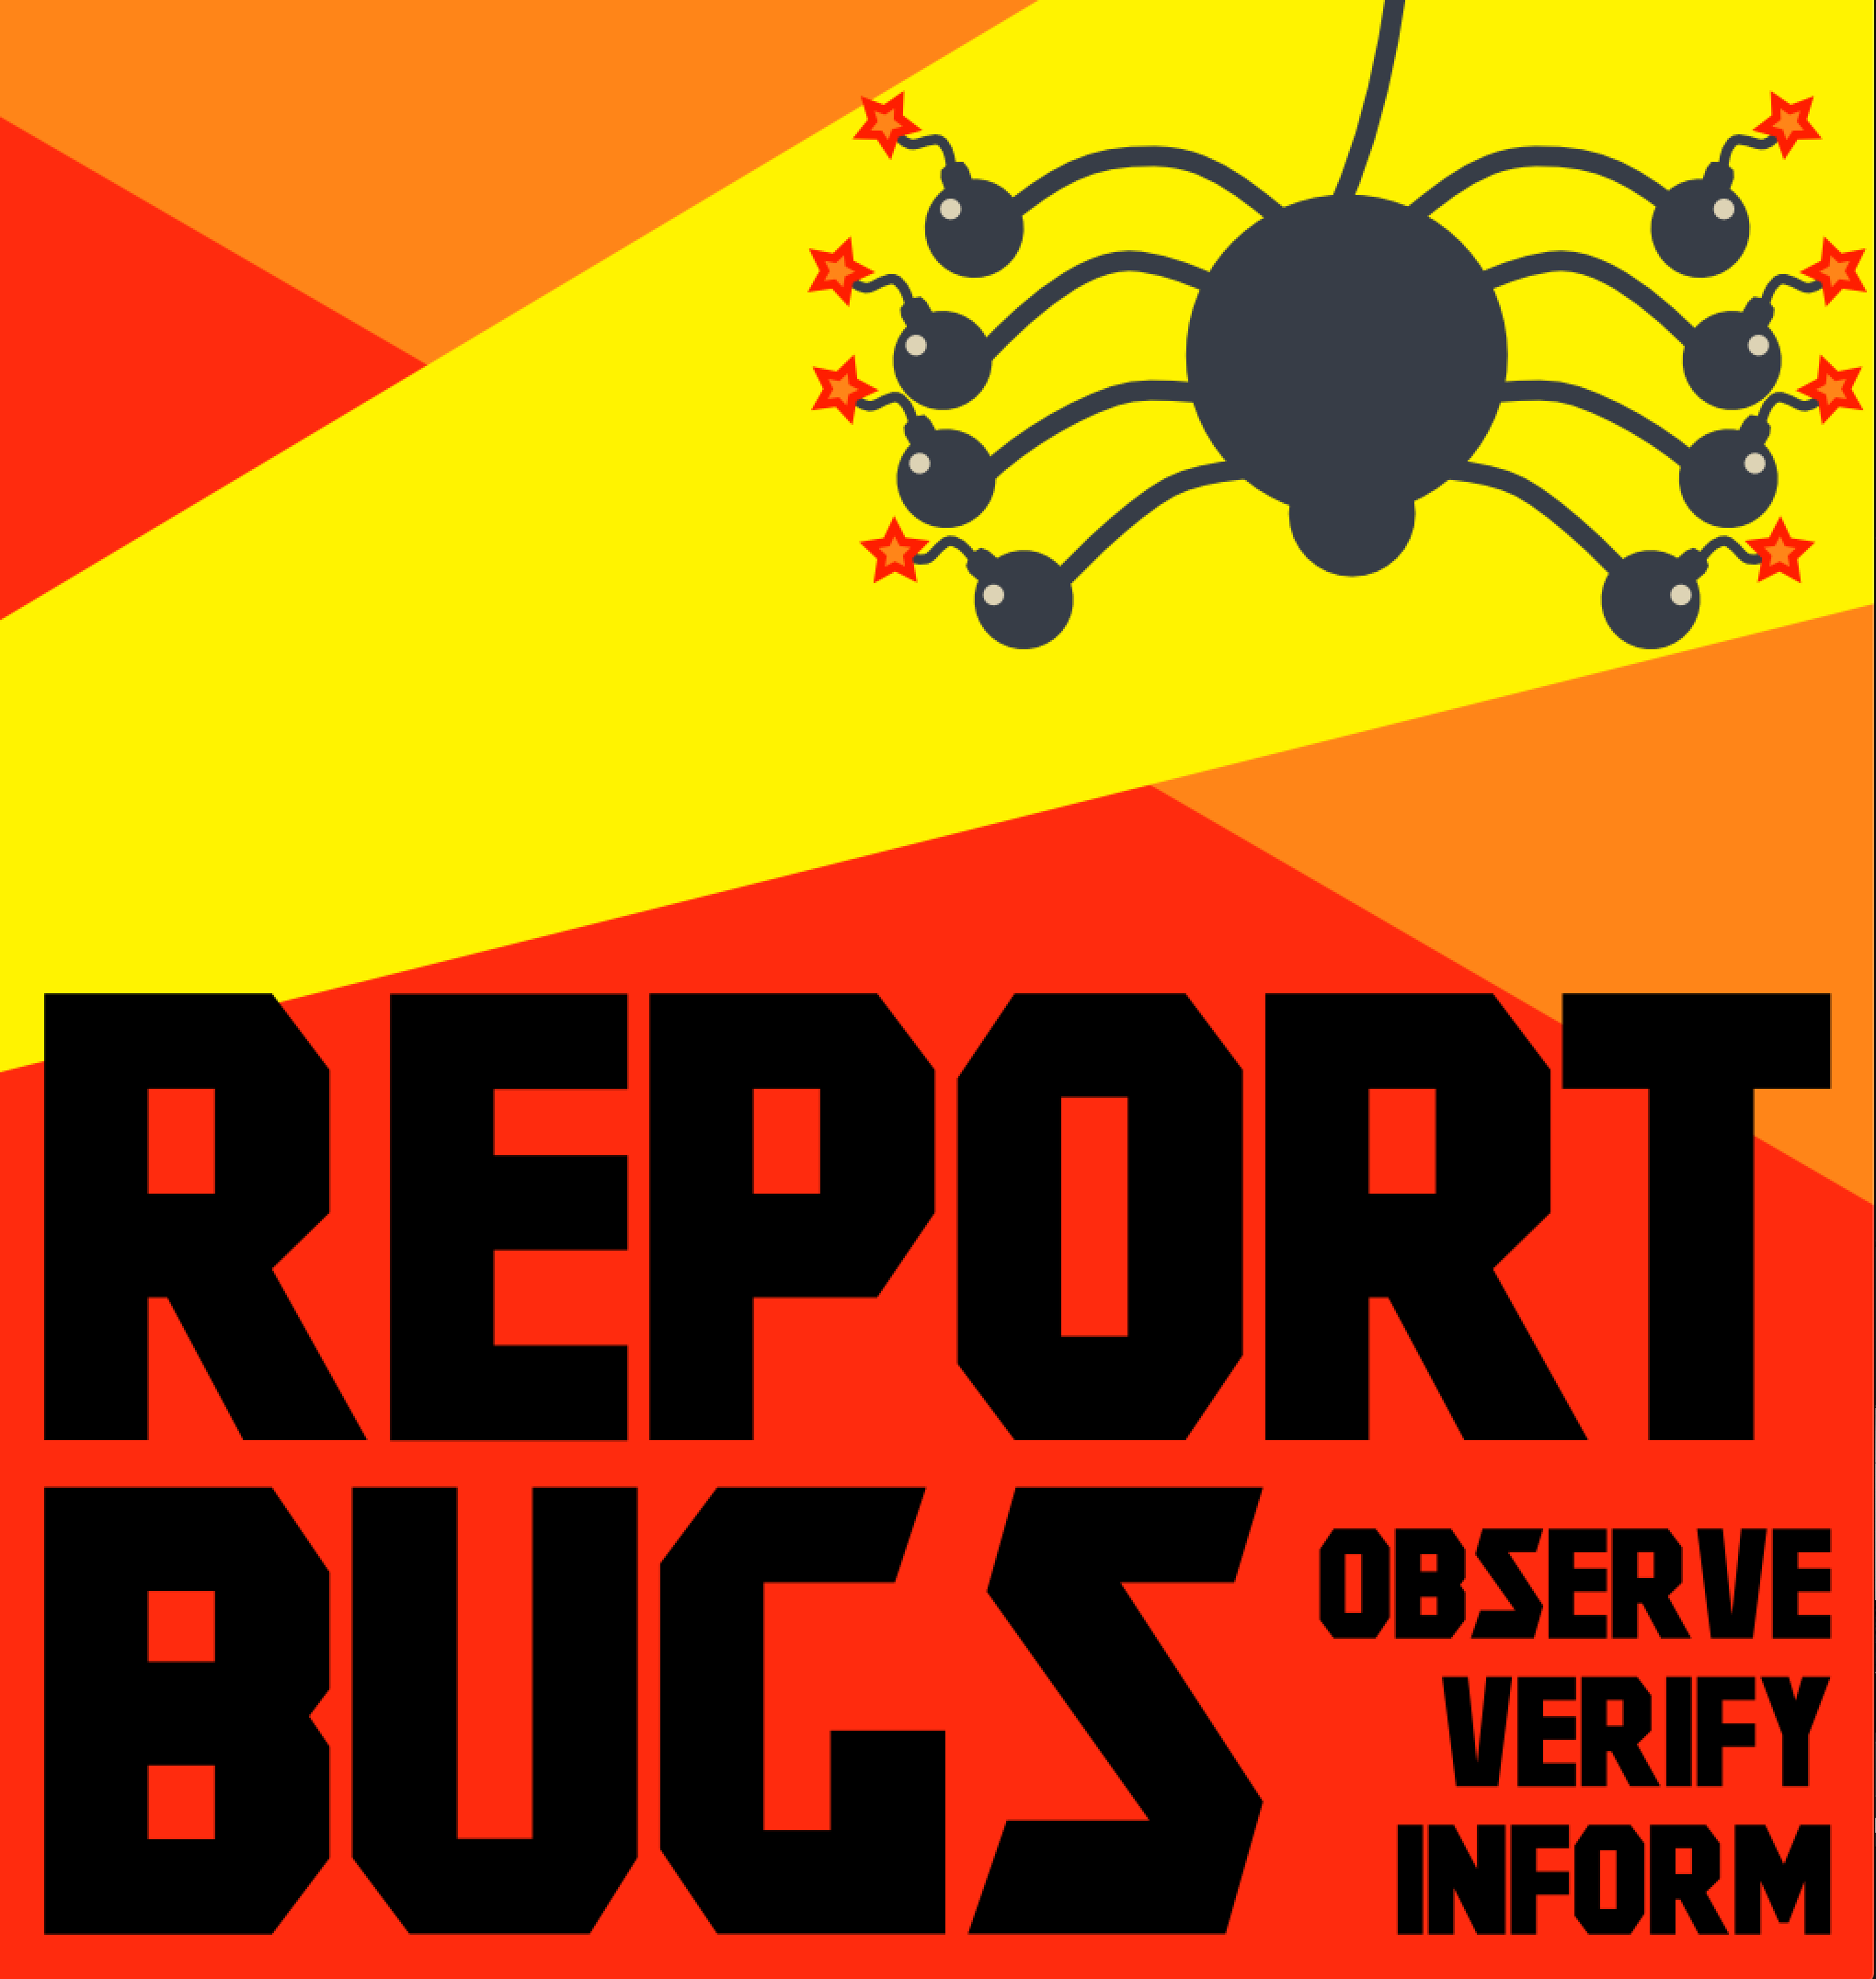 Passing a standard for bug reporting